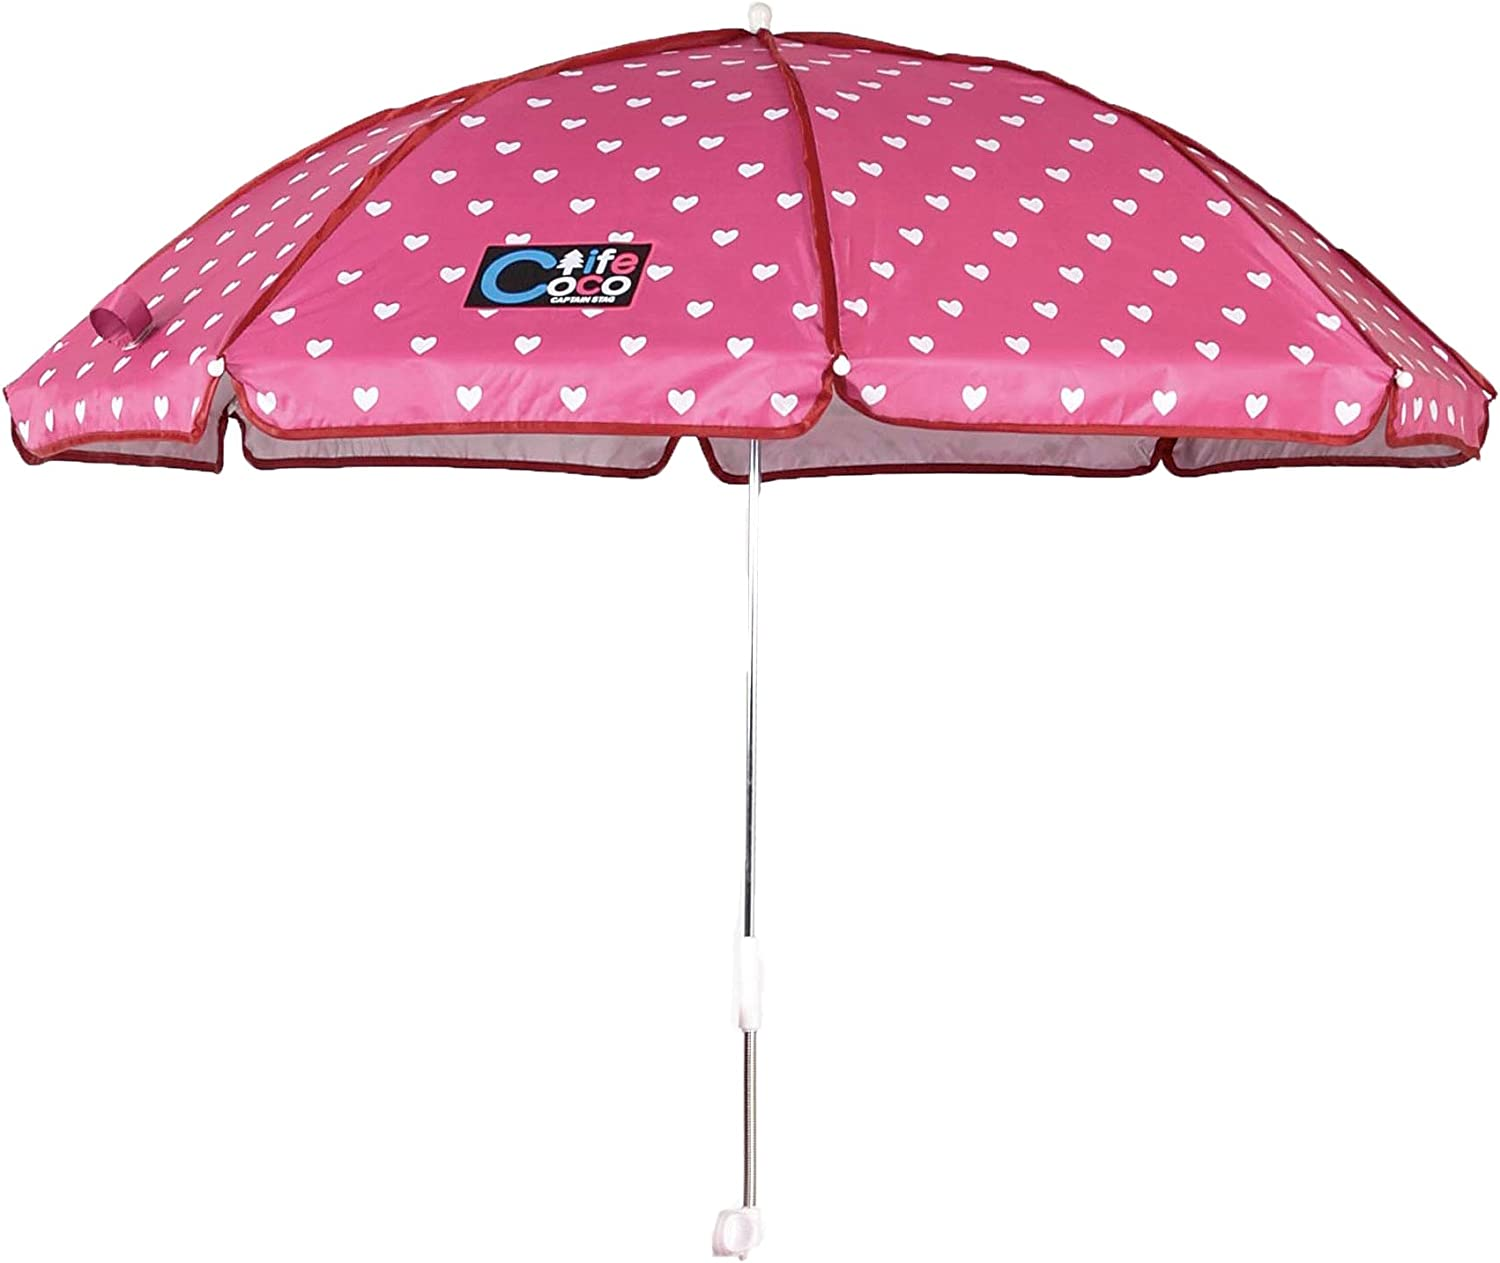 Captain Stagg (CAPTAIN STAG) umbrellas pink UD-15 for umbrellas here Life chair